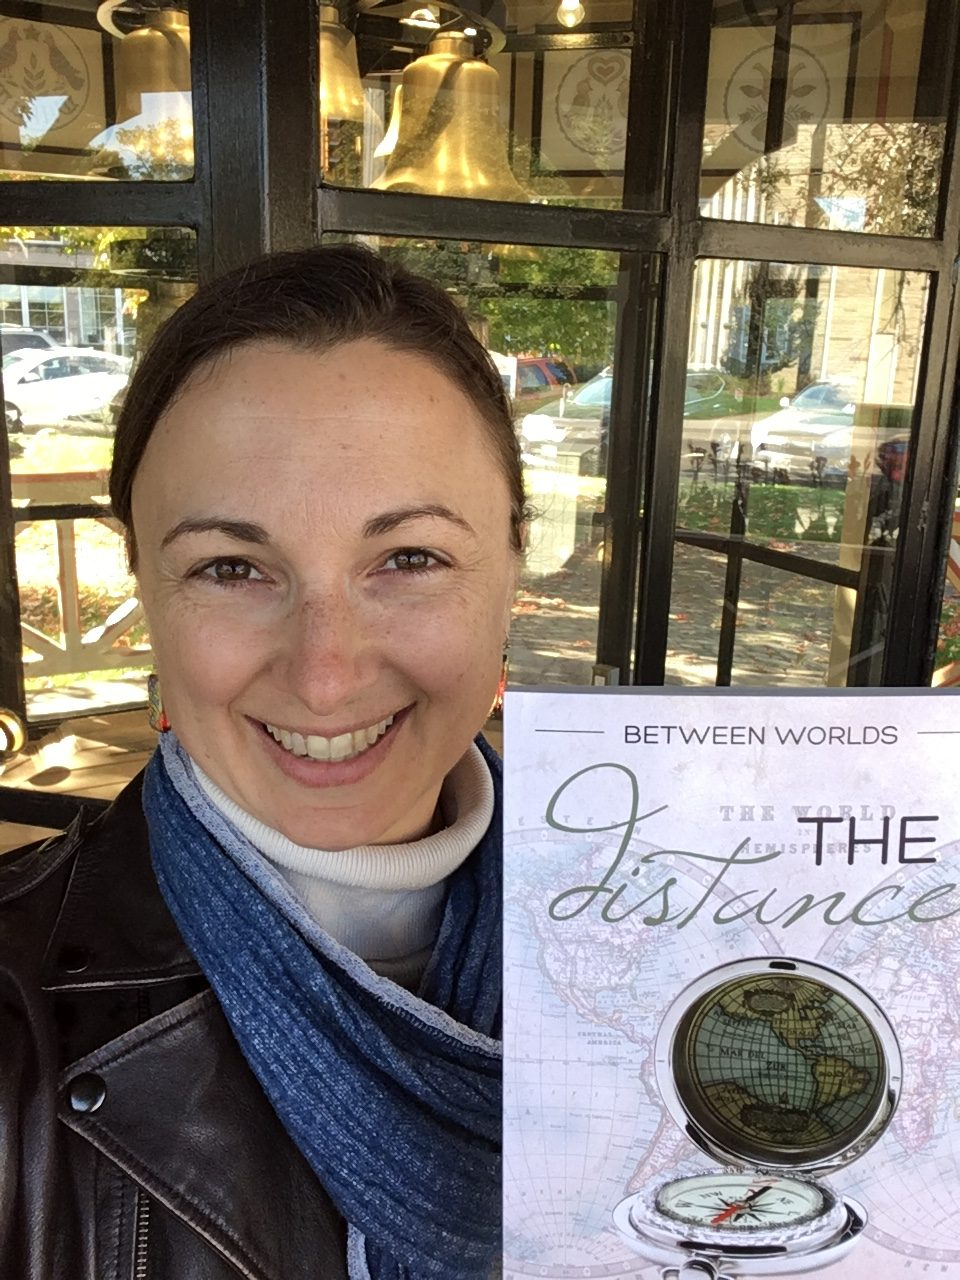 Lori Wolf-Heffner holding up a copy of Between Worlds 2: The Distance